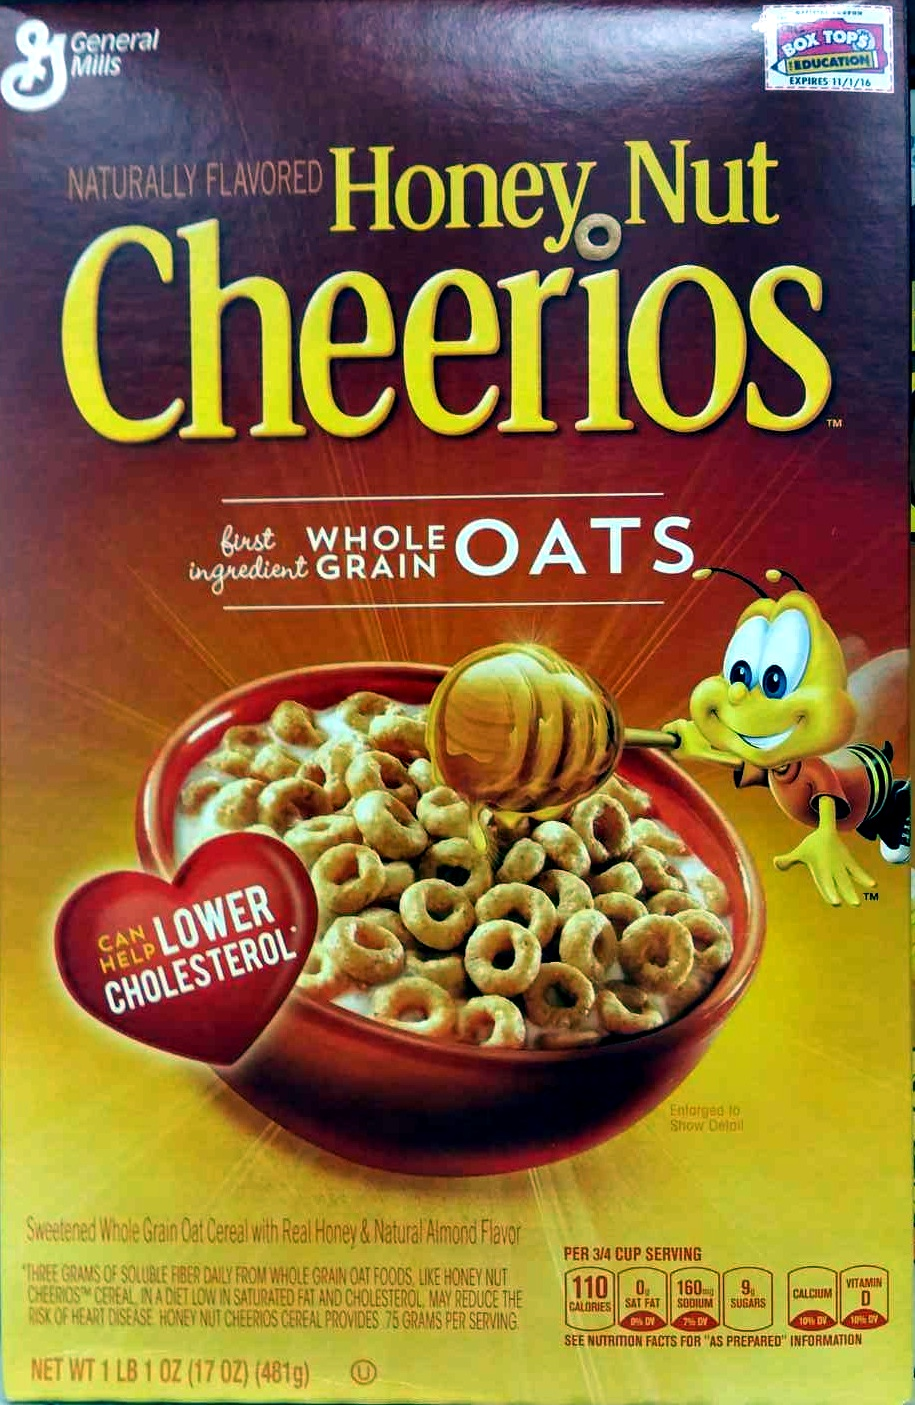 honey nut cheerios - general mills - 1 lb (481 g)